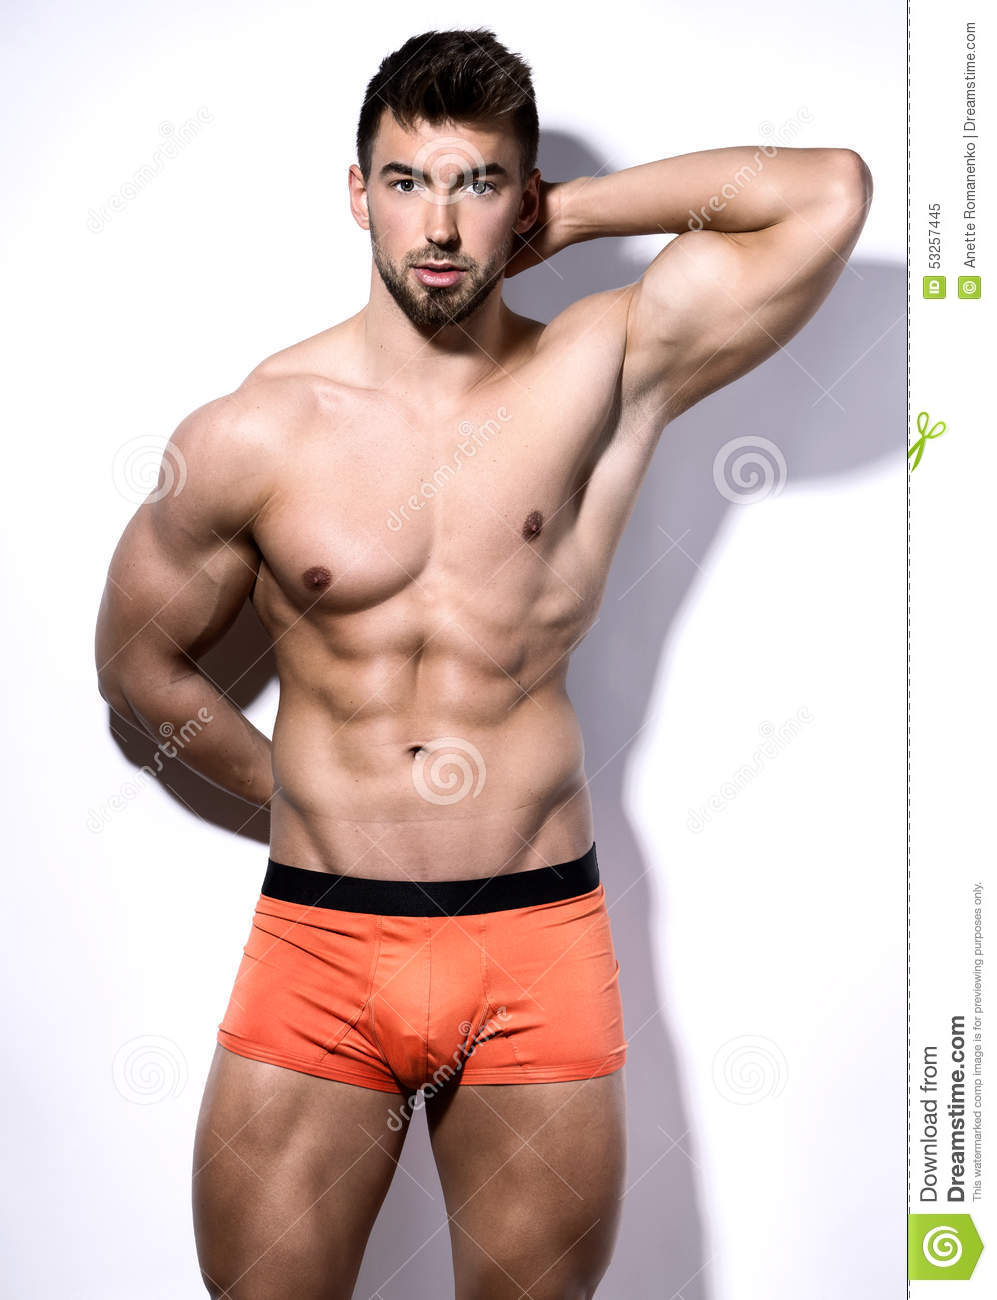 Handsome Muscular Young Bodybuilder Showing His Muscles